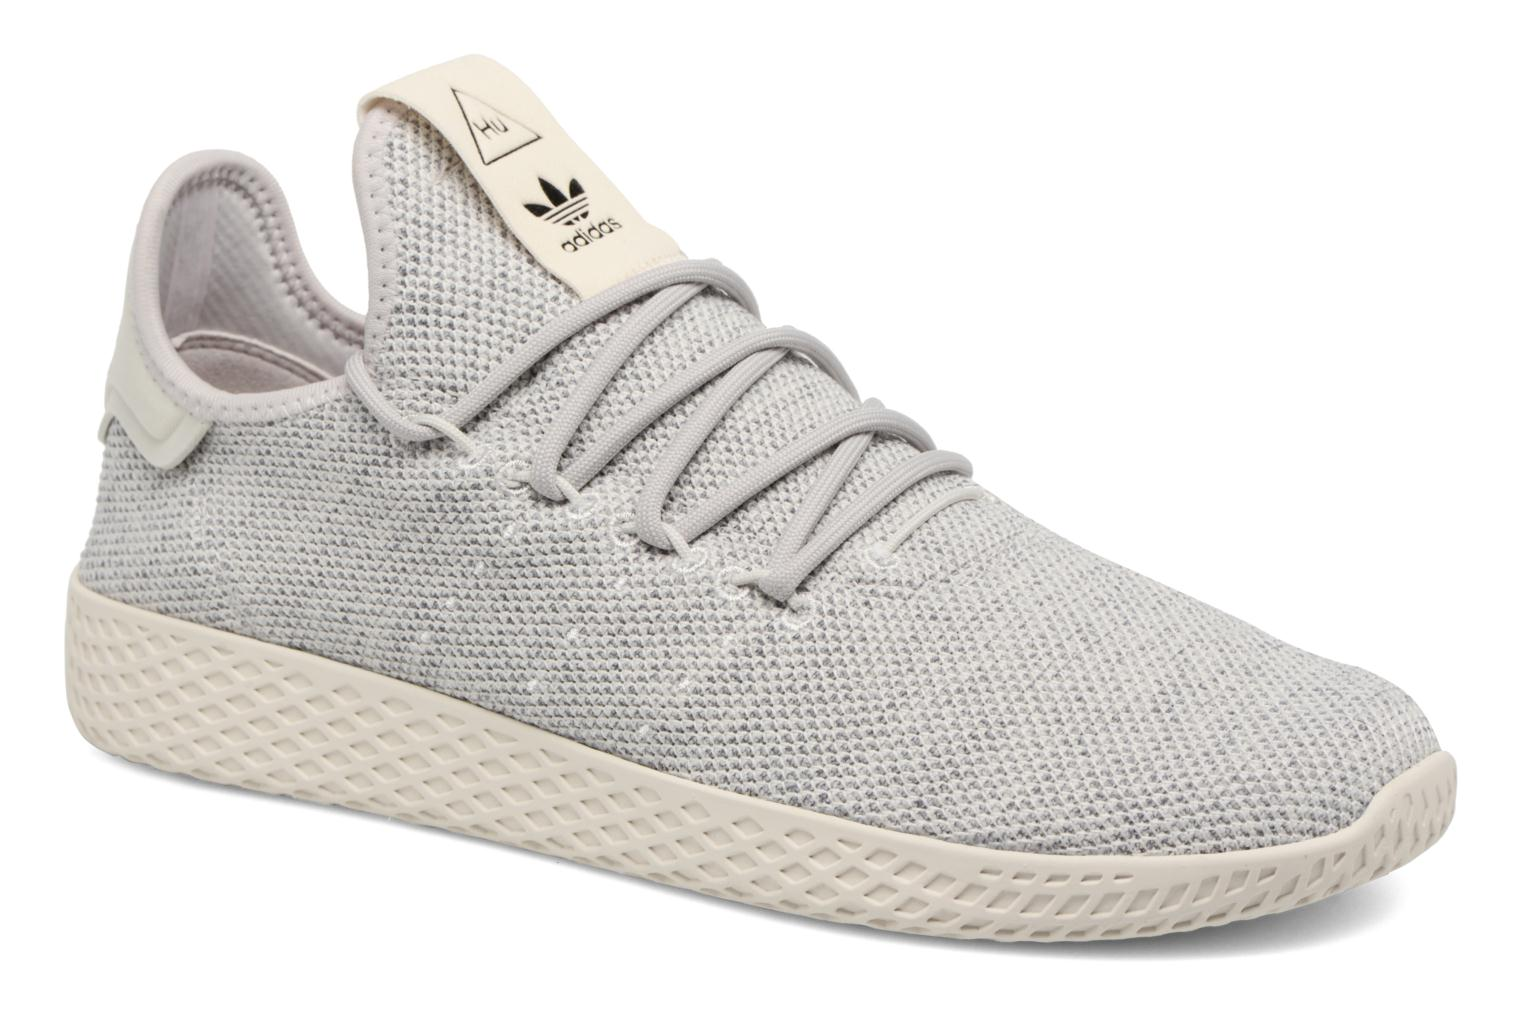 adidas Originals Pharrell Williams Tennis Hu White/Blue Textile 37 1/3 EU d7tIXXF